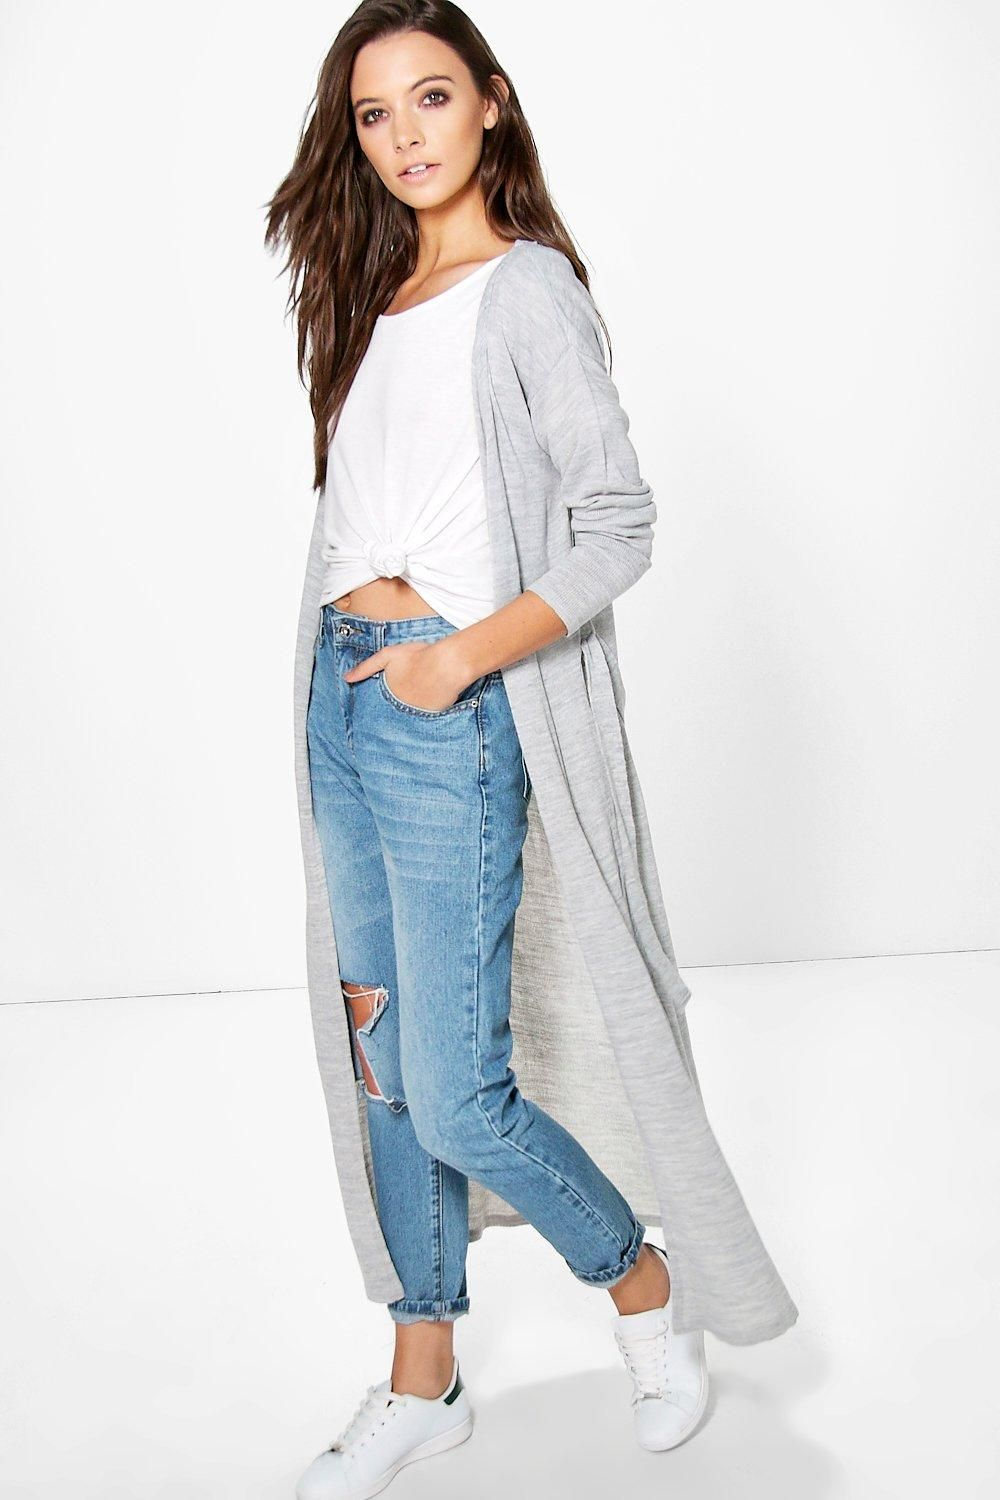 Alexis Belted Duster Cardigan | Dusters, Spring trends and Clothes